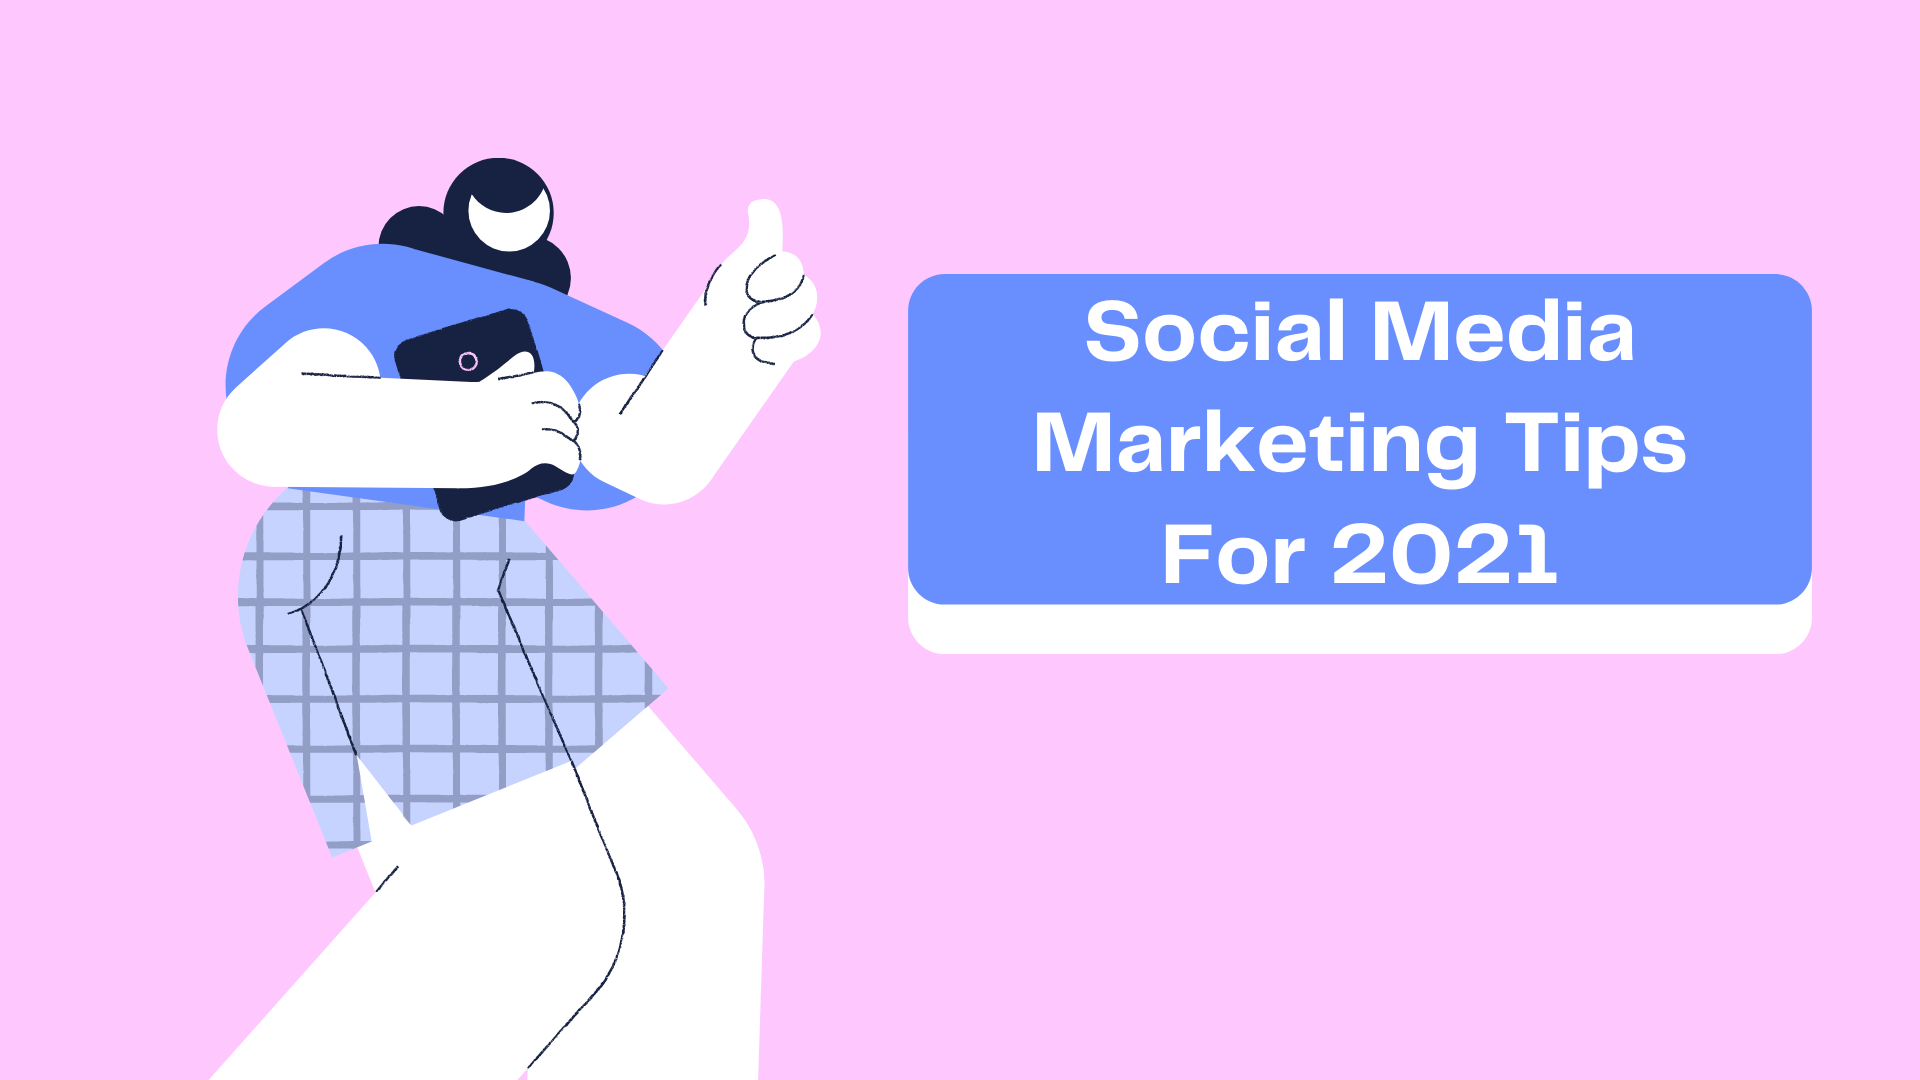 Social Media Marketing Tips 2021